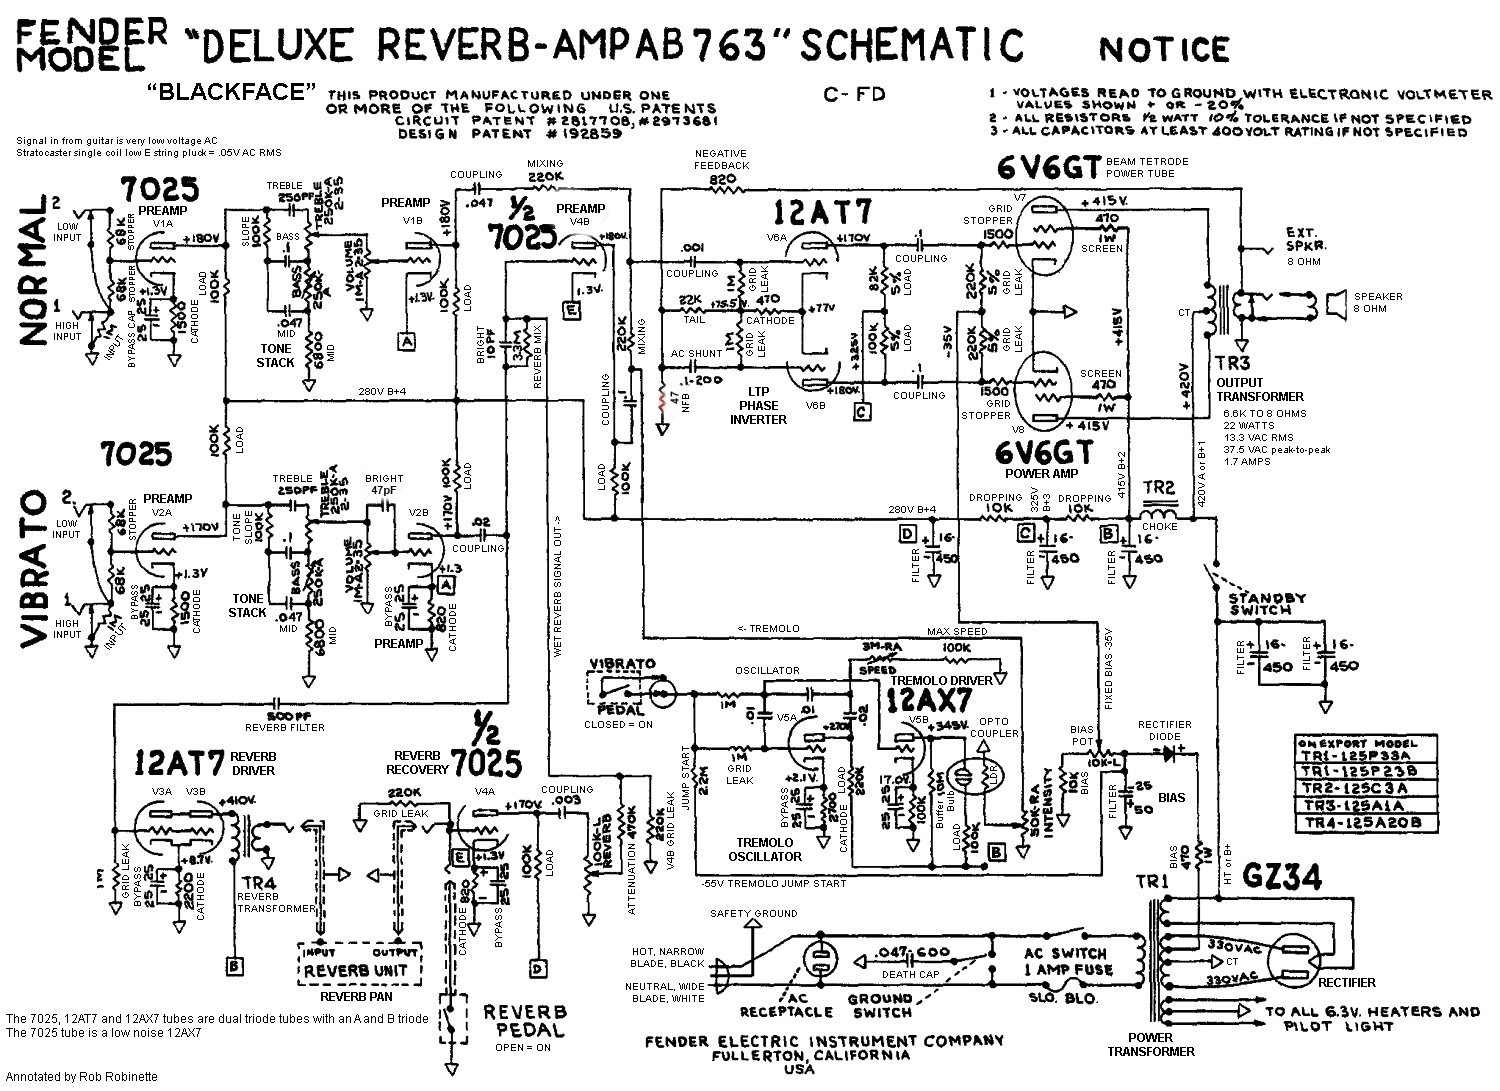 Reading Schematics Voltage Booster Circuit Electronic Circuits And Diagram Notice The Reverb At Lower Left Tremolo Center Every Component Function Is Listed On This Schematic Click Image For Full